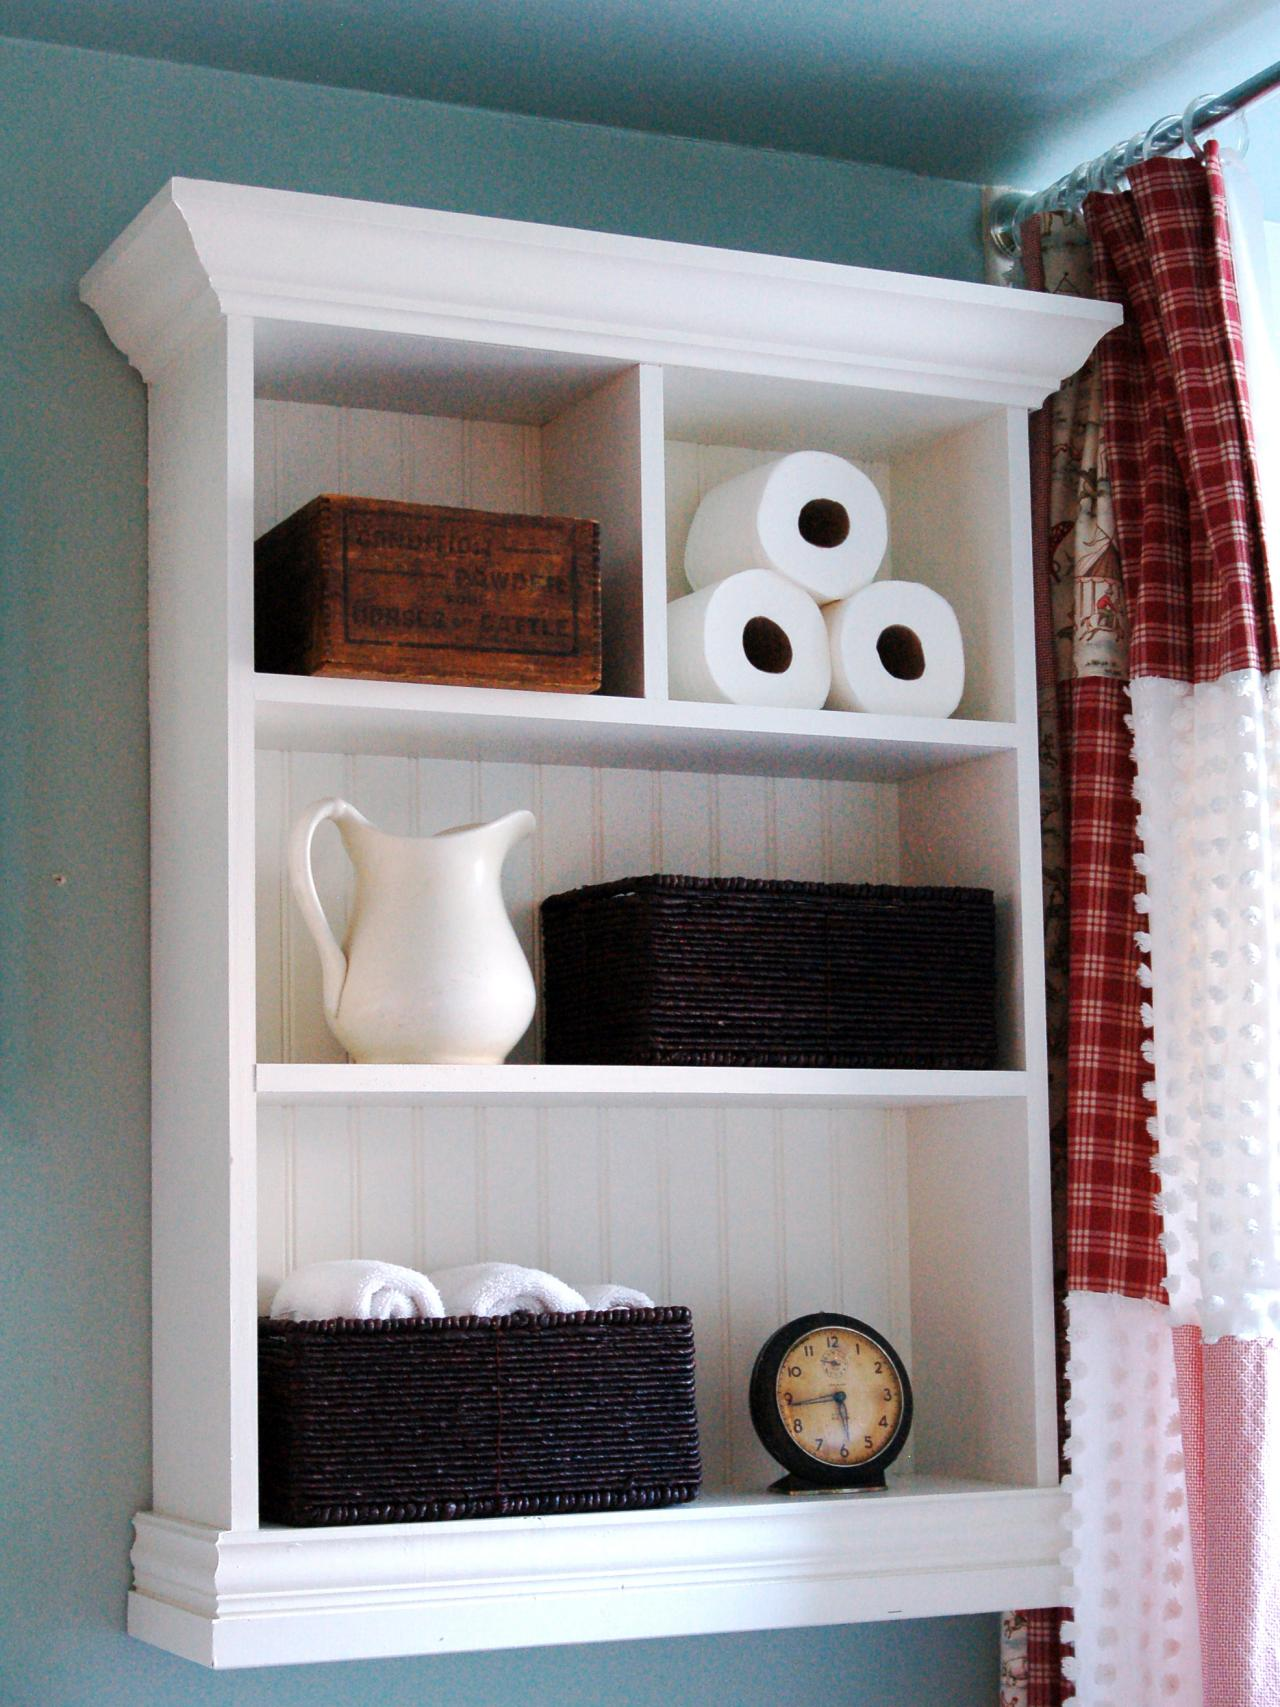 Modern bathroom storage cabinets - Cottage Bathroom Storage Cabinet